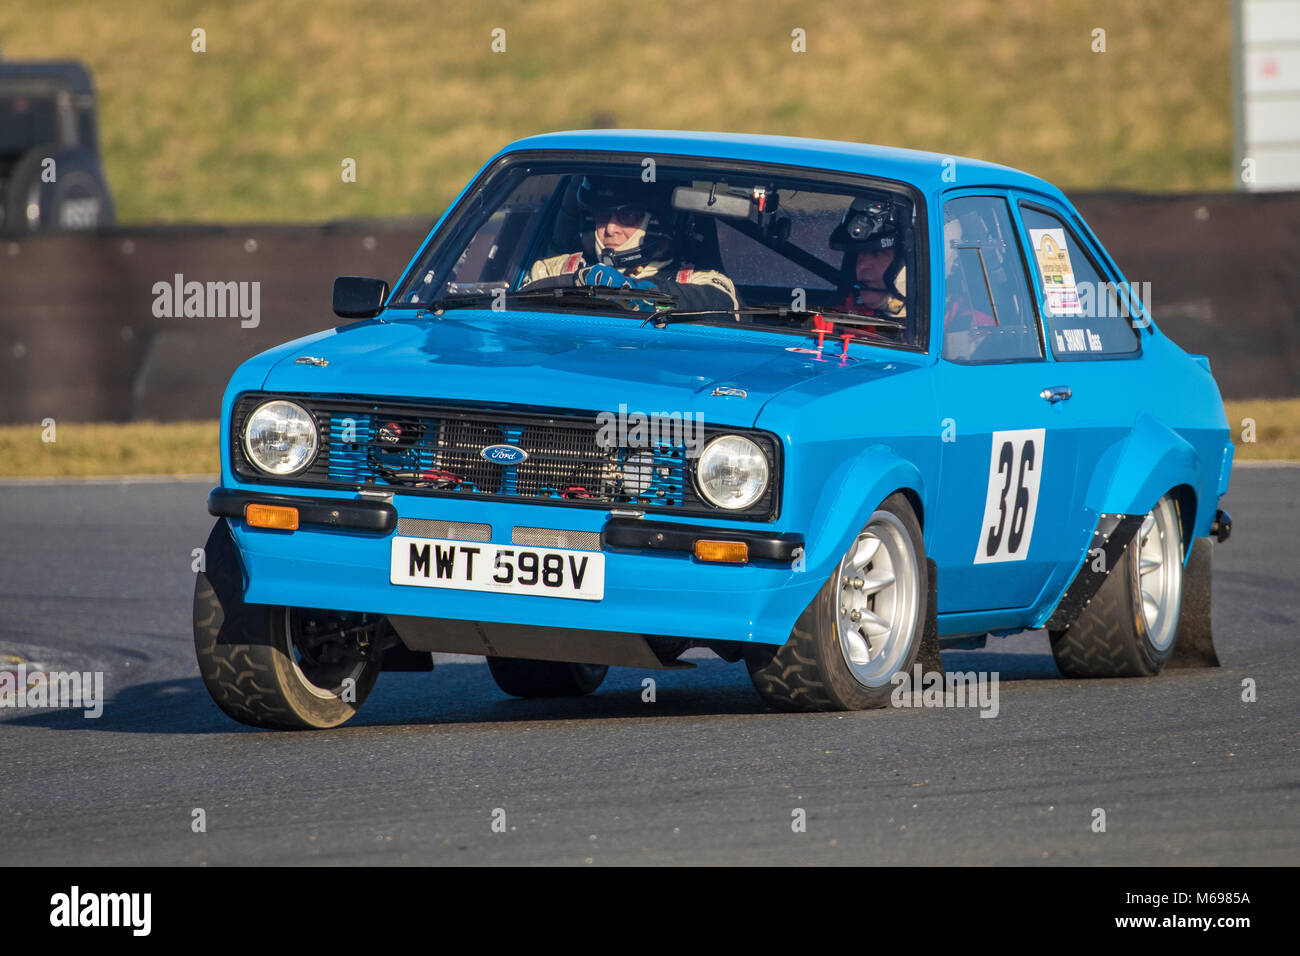 Stuart Ranby and Ian Bass in the Ford Escort at the Motorsport News 2018 Snetterton Stage Rally, Norfolk, UK. Stock Photo